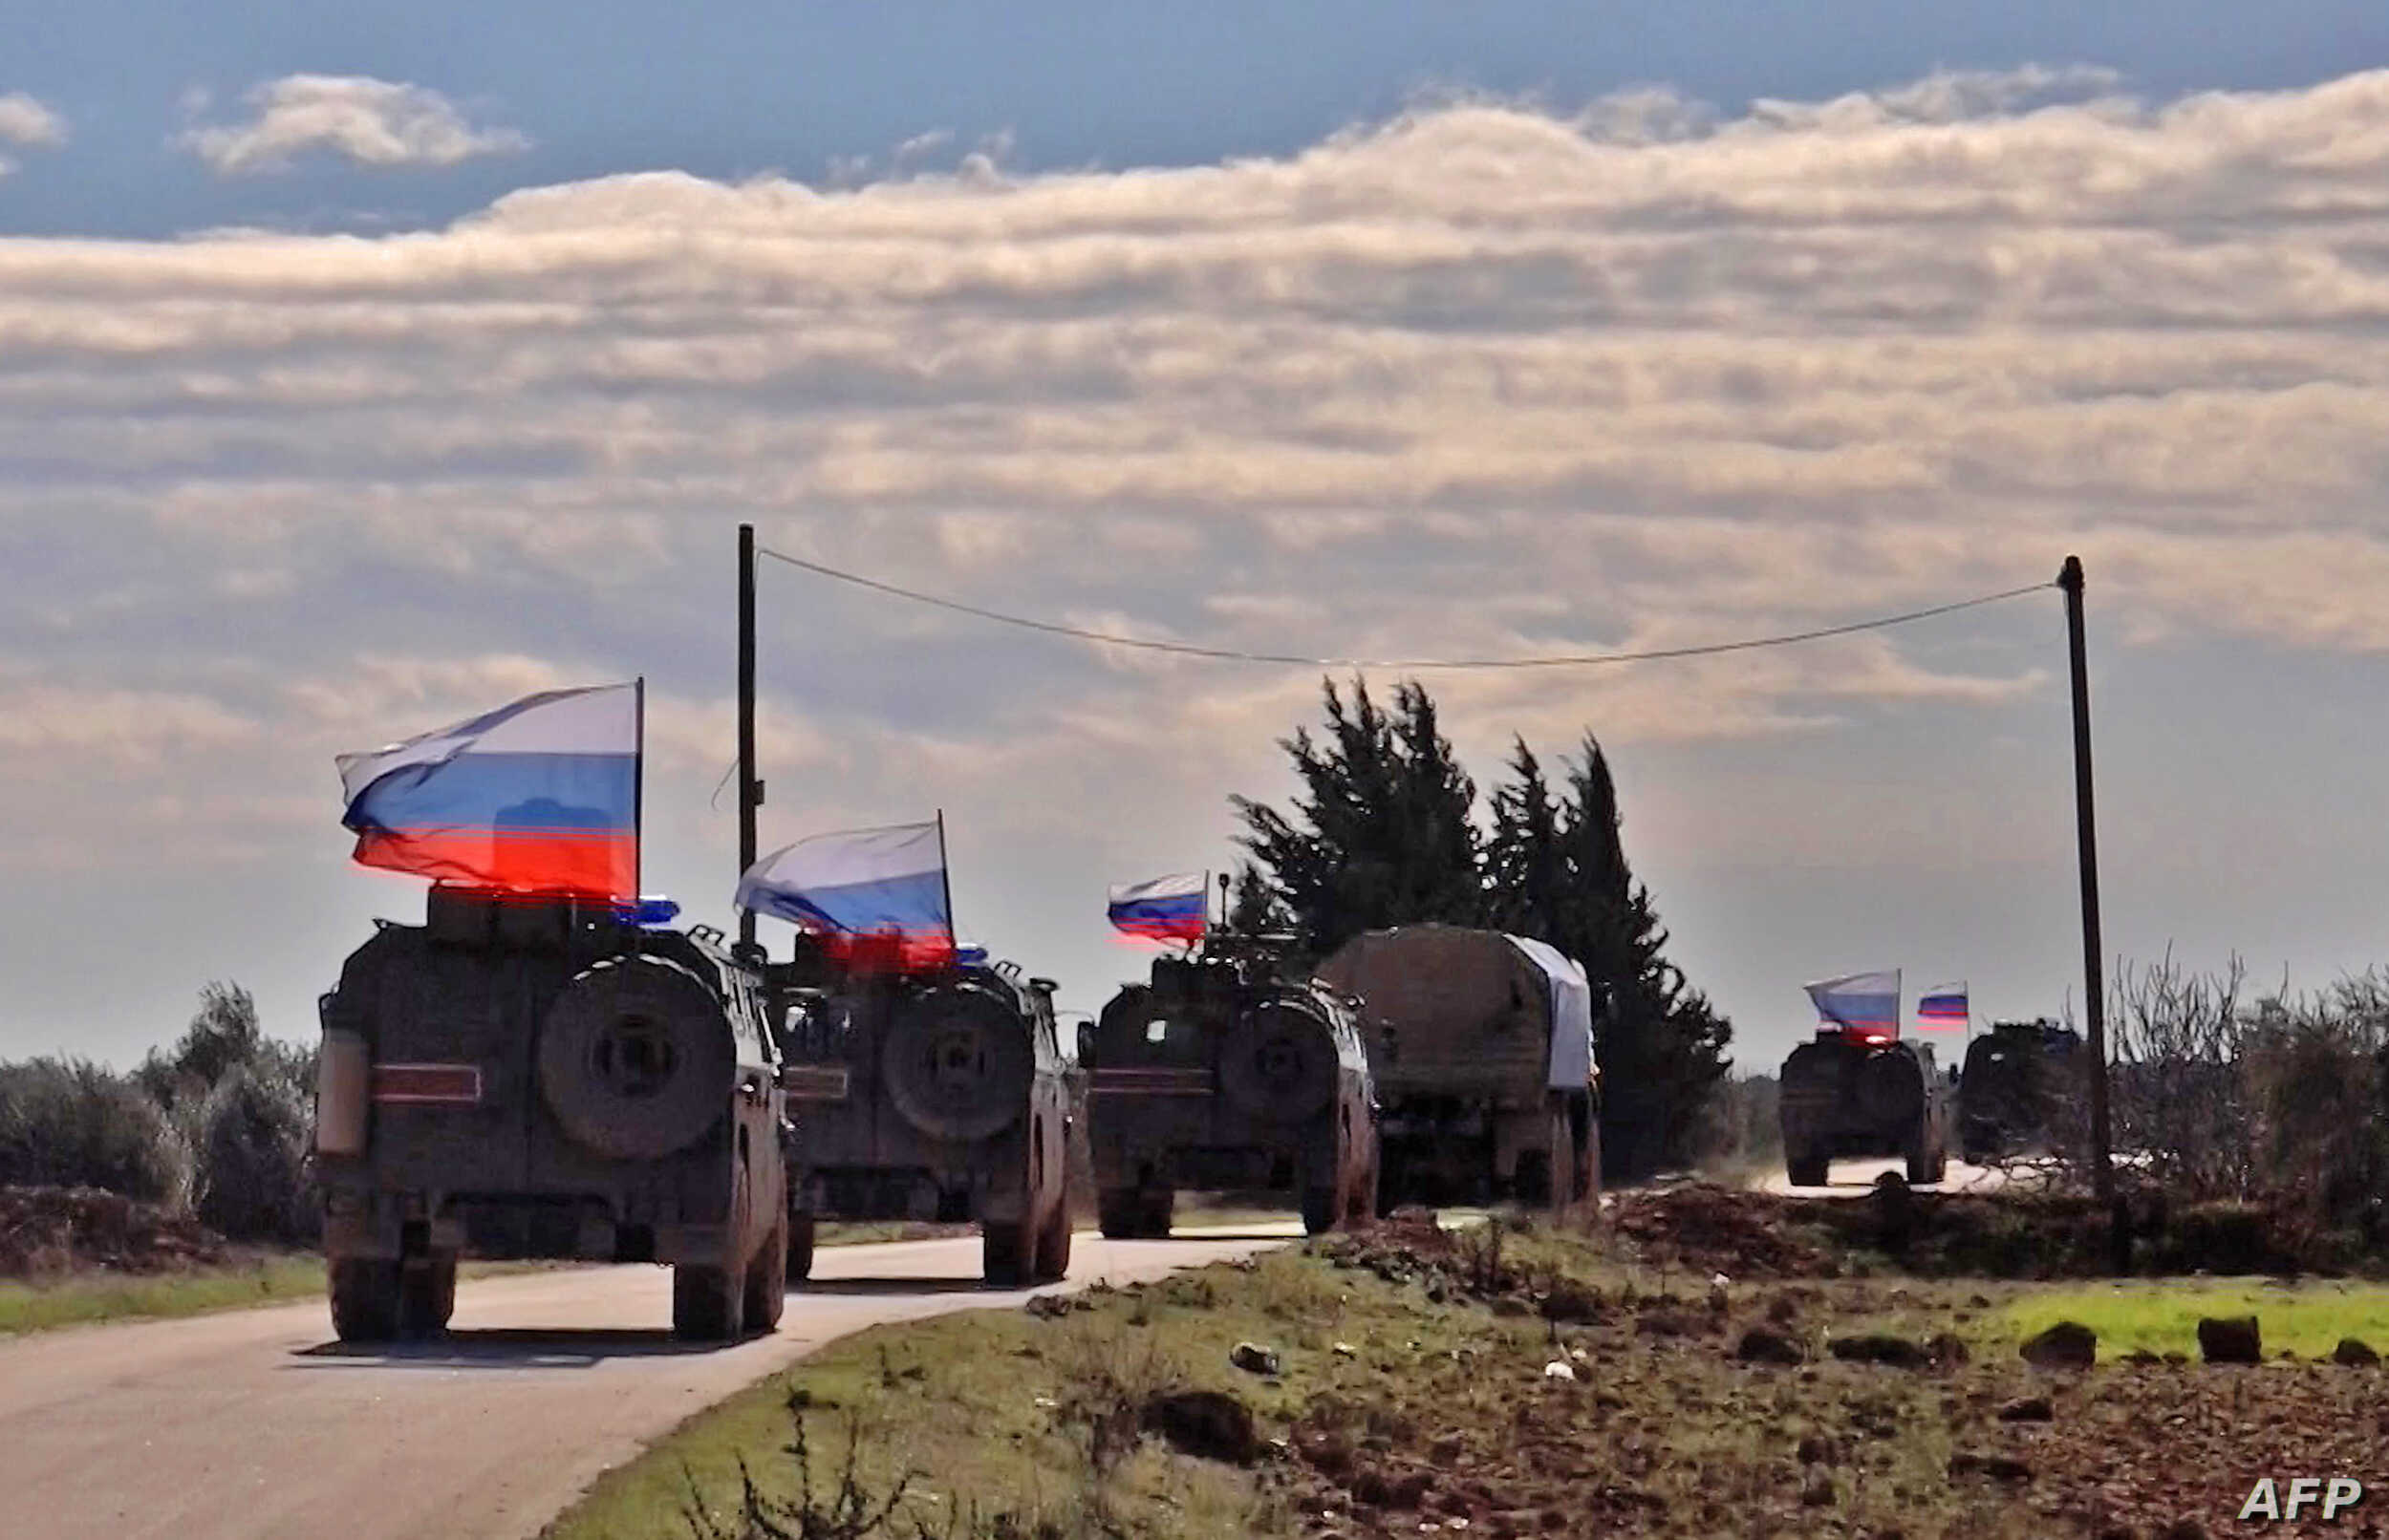 An image grab taken from AFP-TV on Jan. 17, 2019, shows Russian army vehicles on patrol in the area of Arimah, just west of Manbij, Syria, where a day earlier a suicide attack on a restaurant killed four U.S personnel.